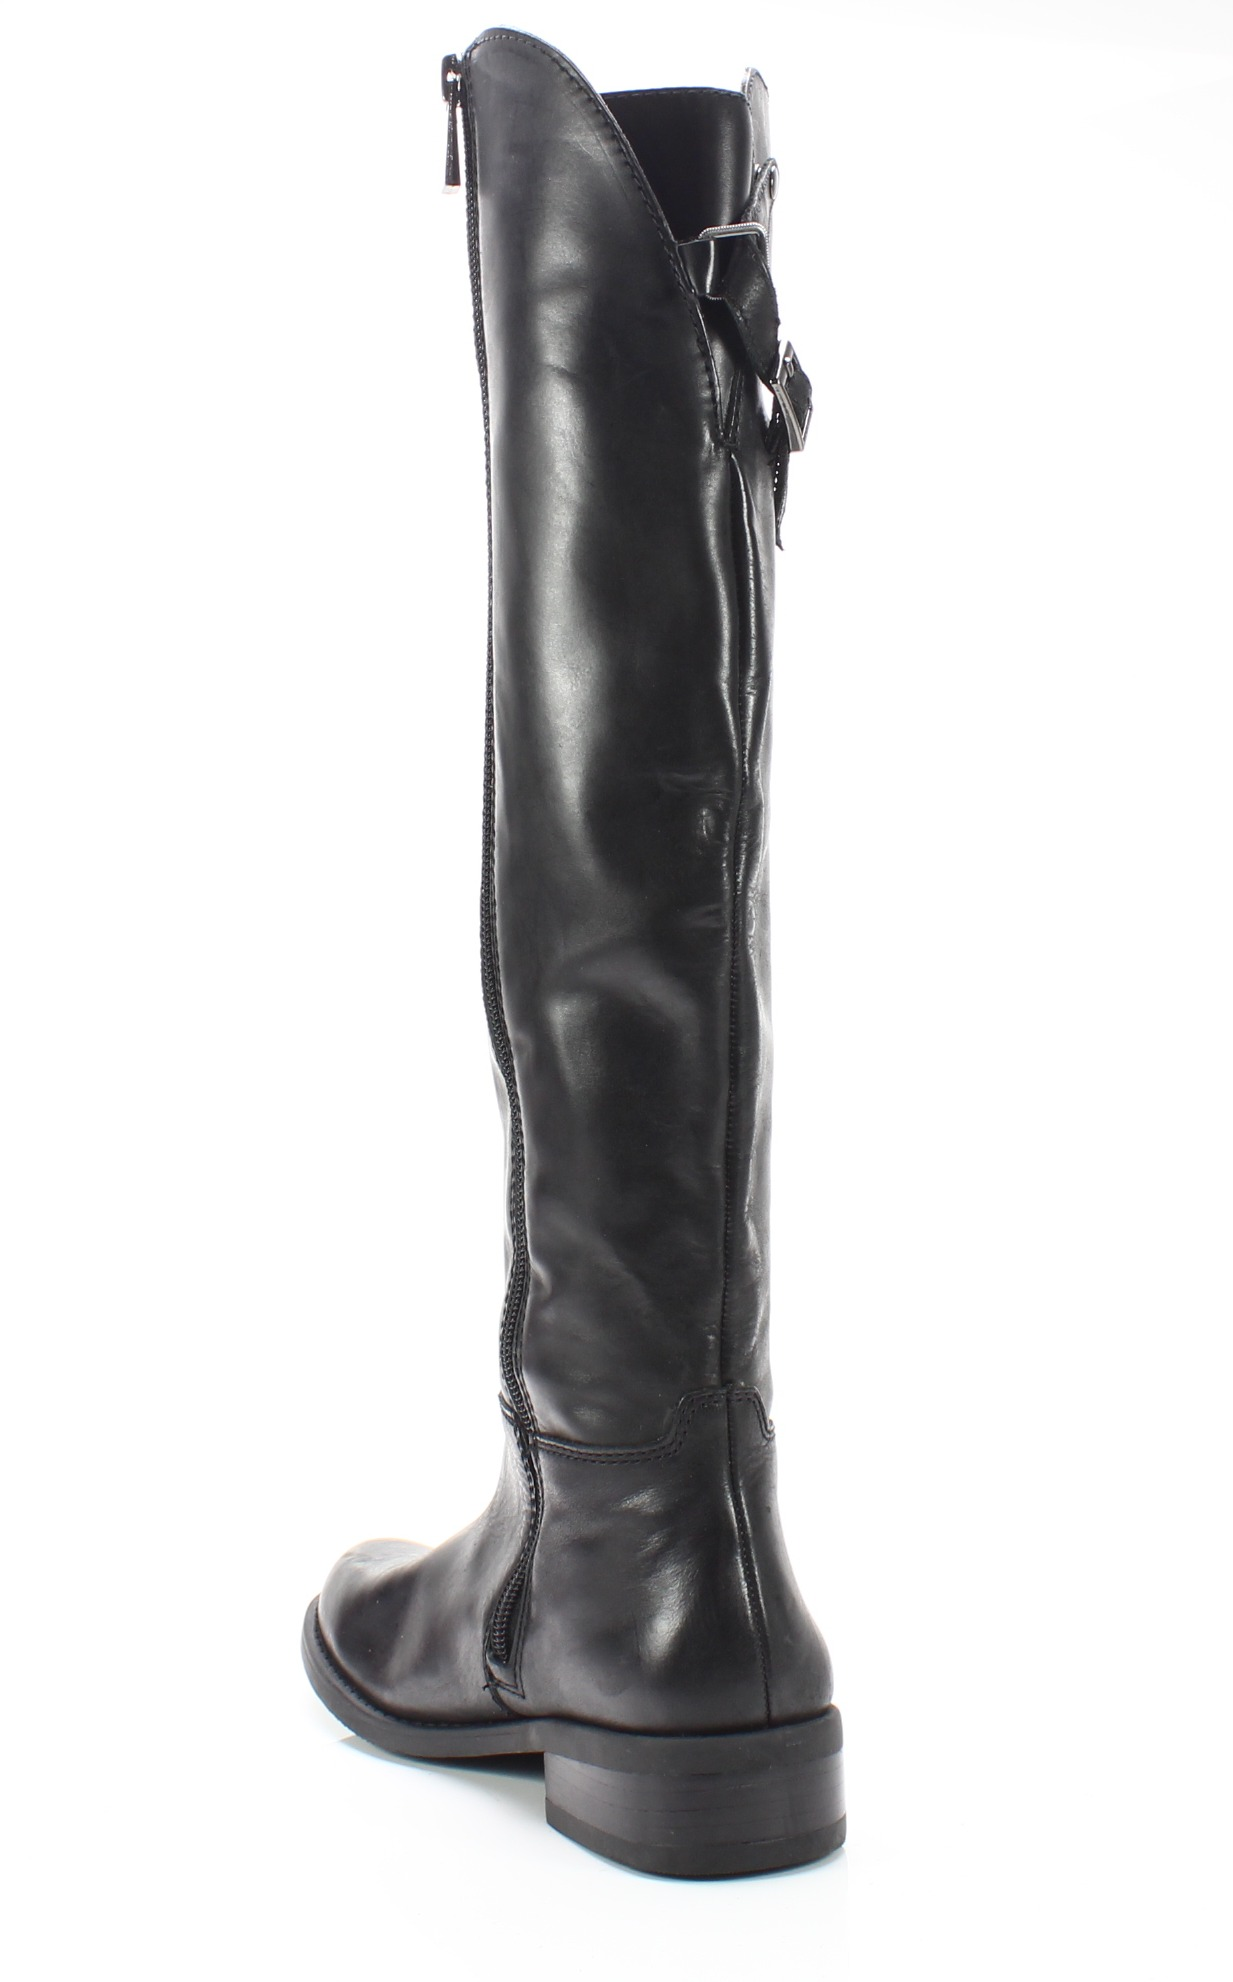 a000ce971d25 Vince Camuto NEW Black Women s Size 5M Kadia Leather Knee High Boots ...